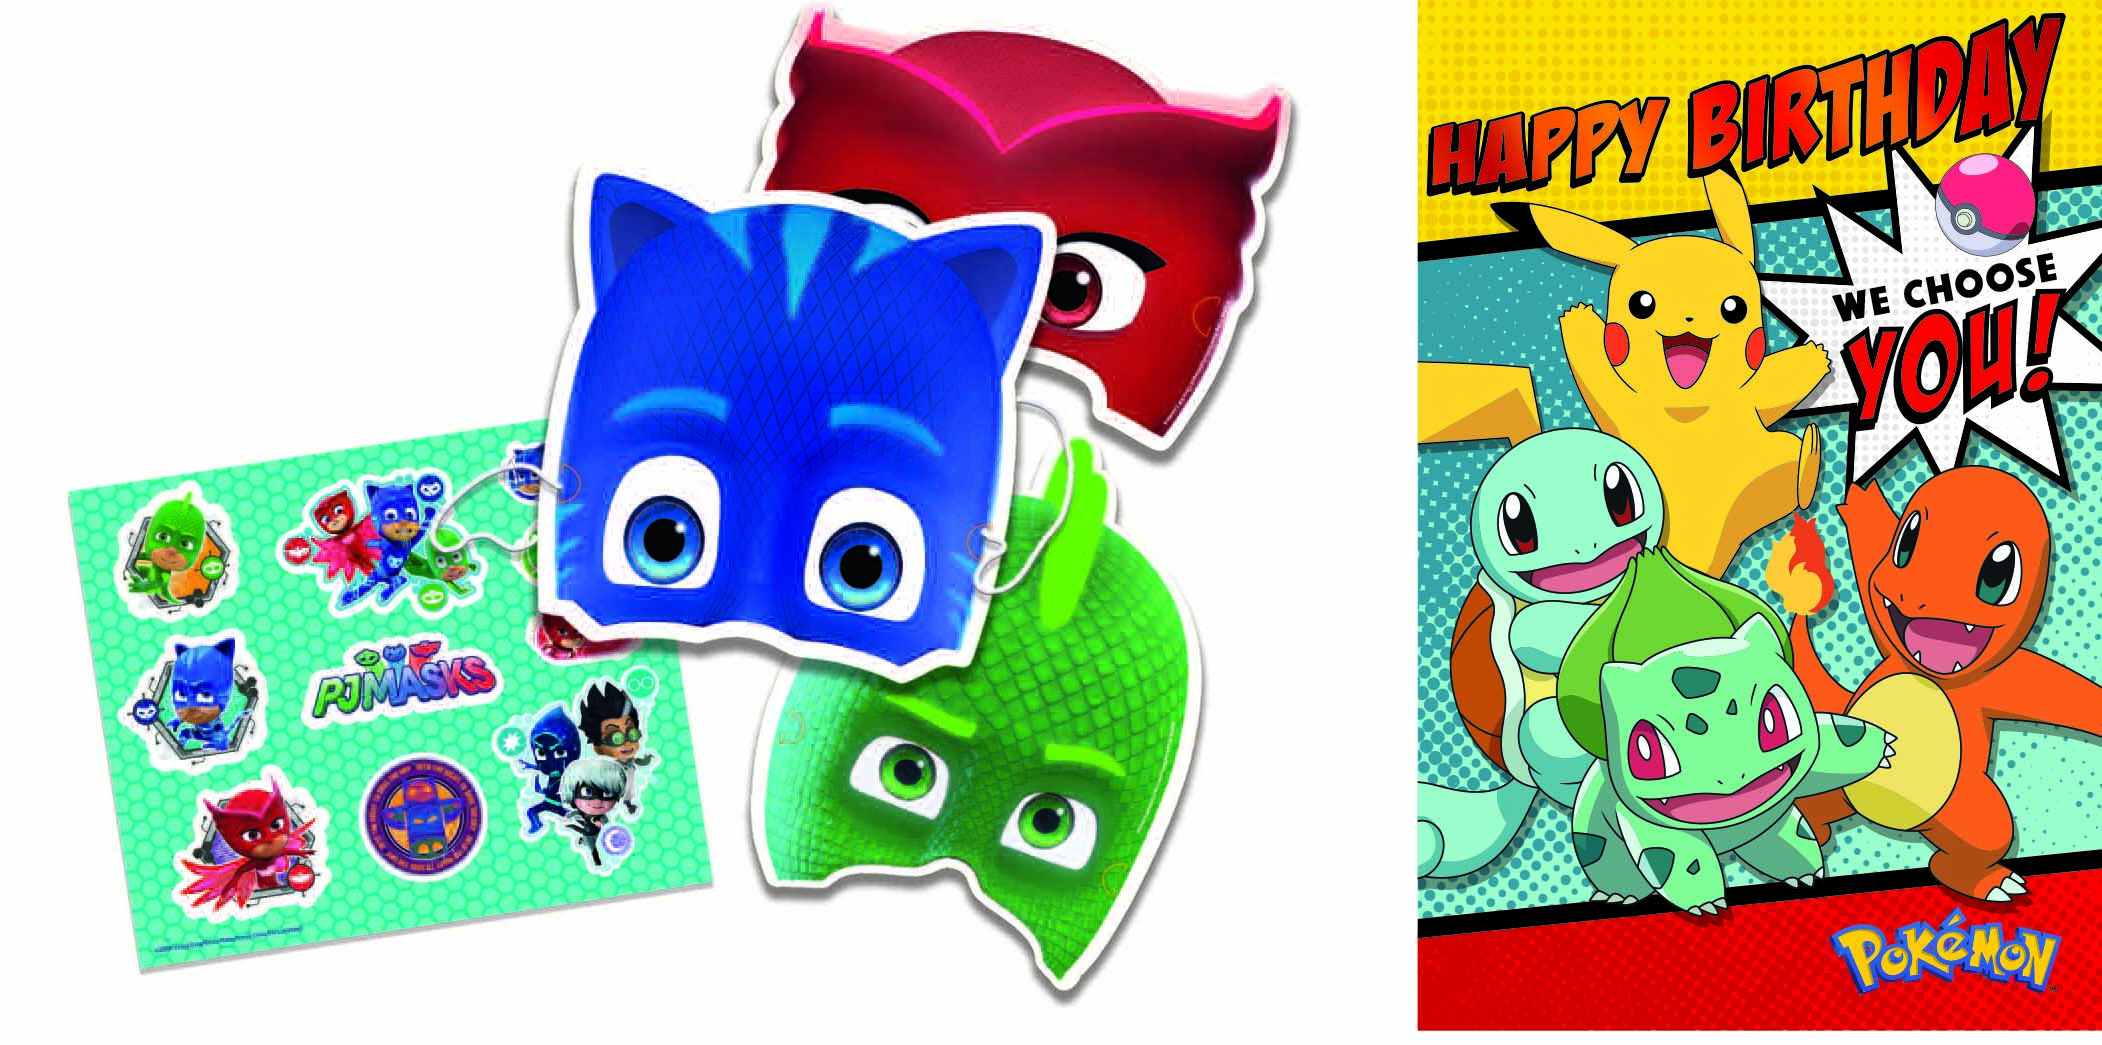 Above: PJ Masks and Pokémon are two more licences which did well for Gemma.